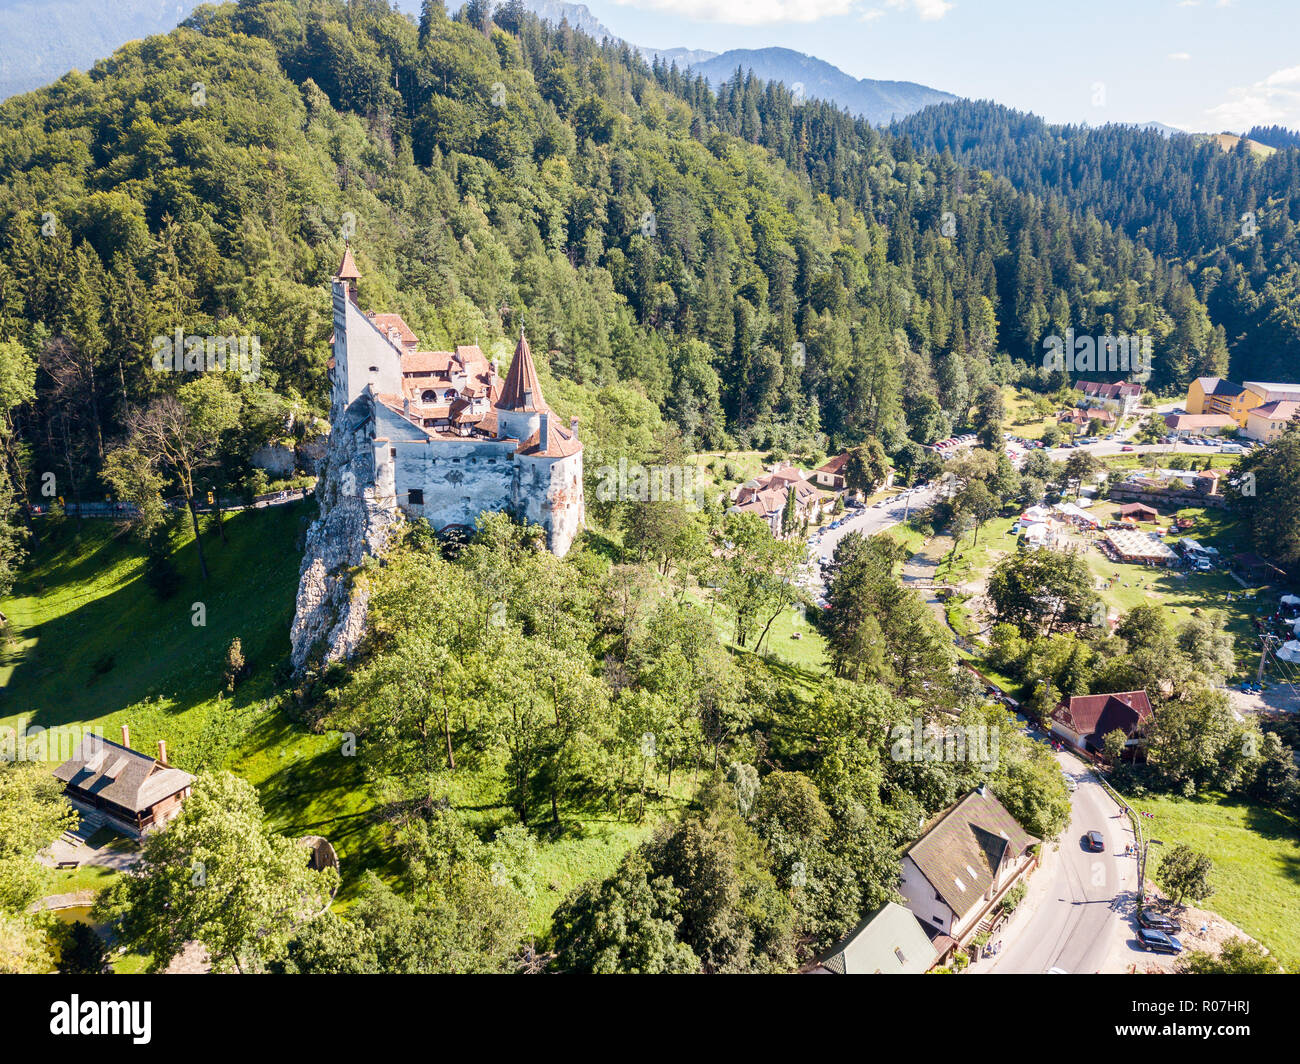 Bran castle on a hill with high spires, walls, red tiled roofs, surrounded by Bran town, Wallachia, Transylvania, Romania. Known as Dracula's Castle. - Stock Image